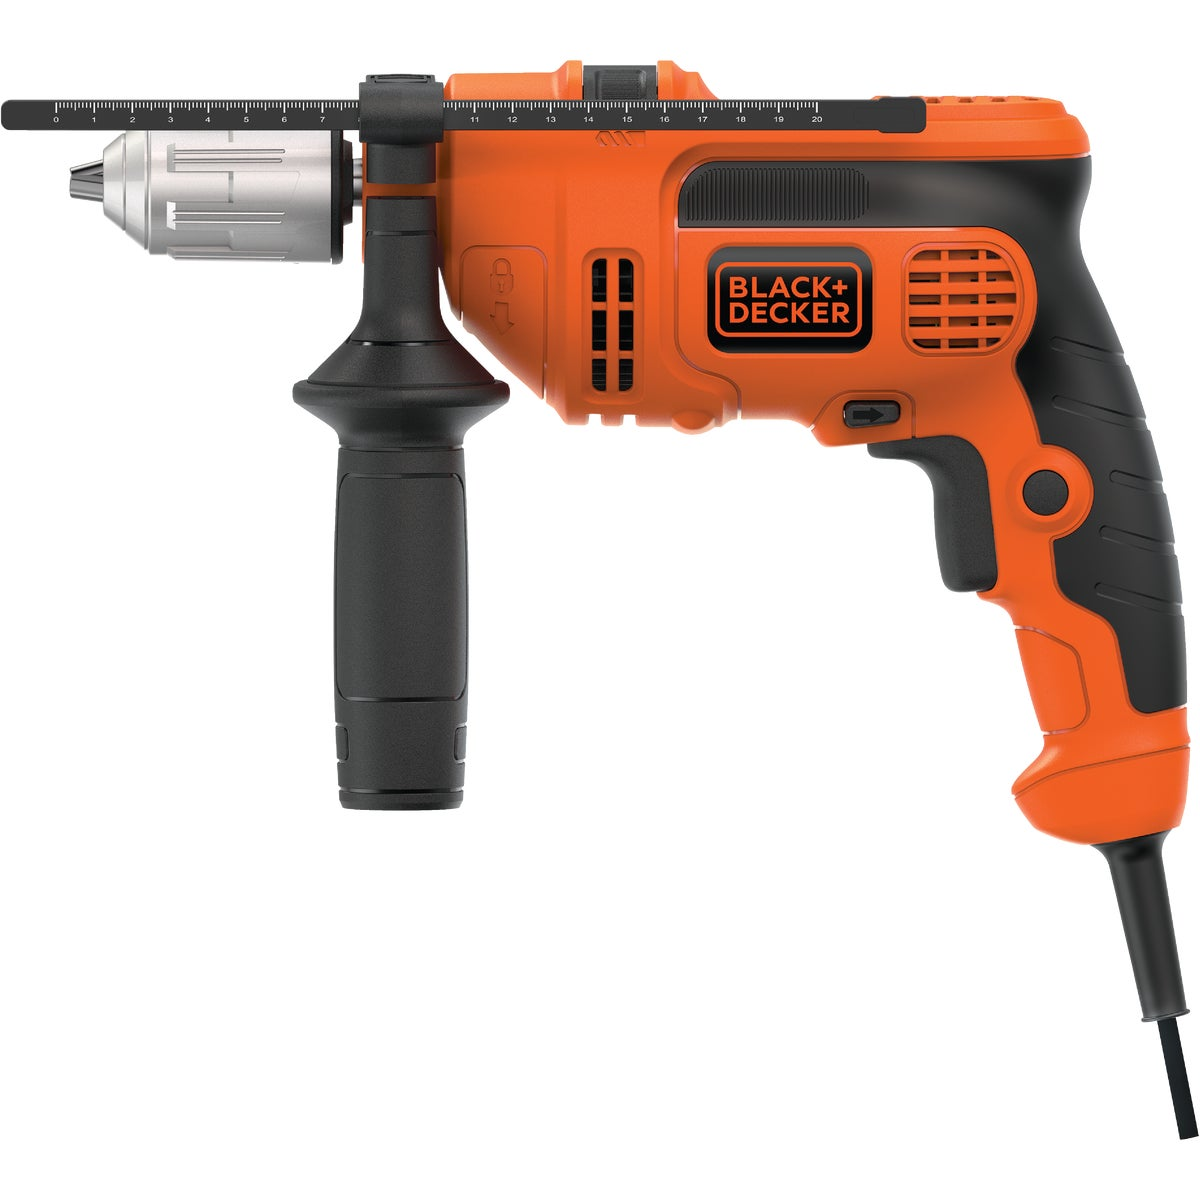 "1/2"" VSR DRILL W/KIT - DR670 by Black & Decker"